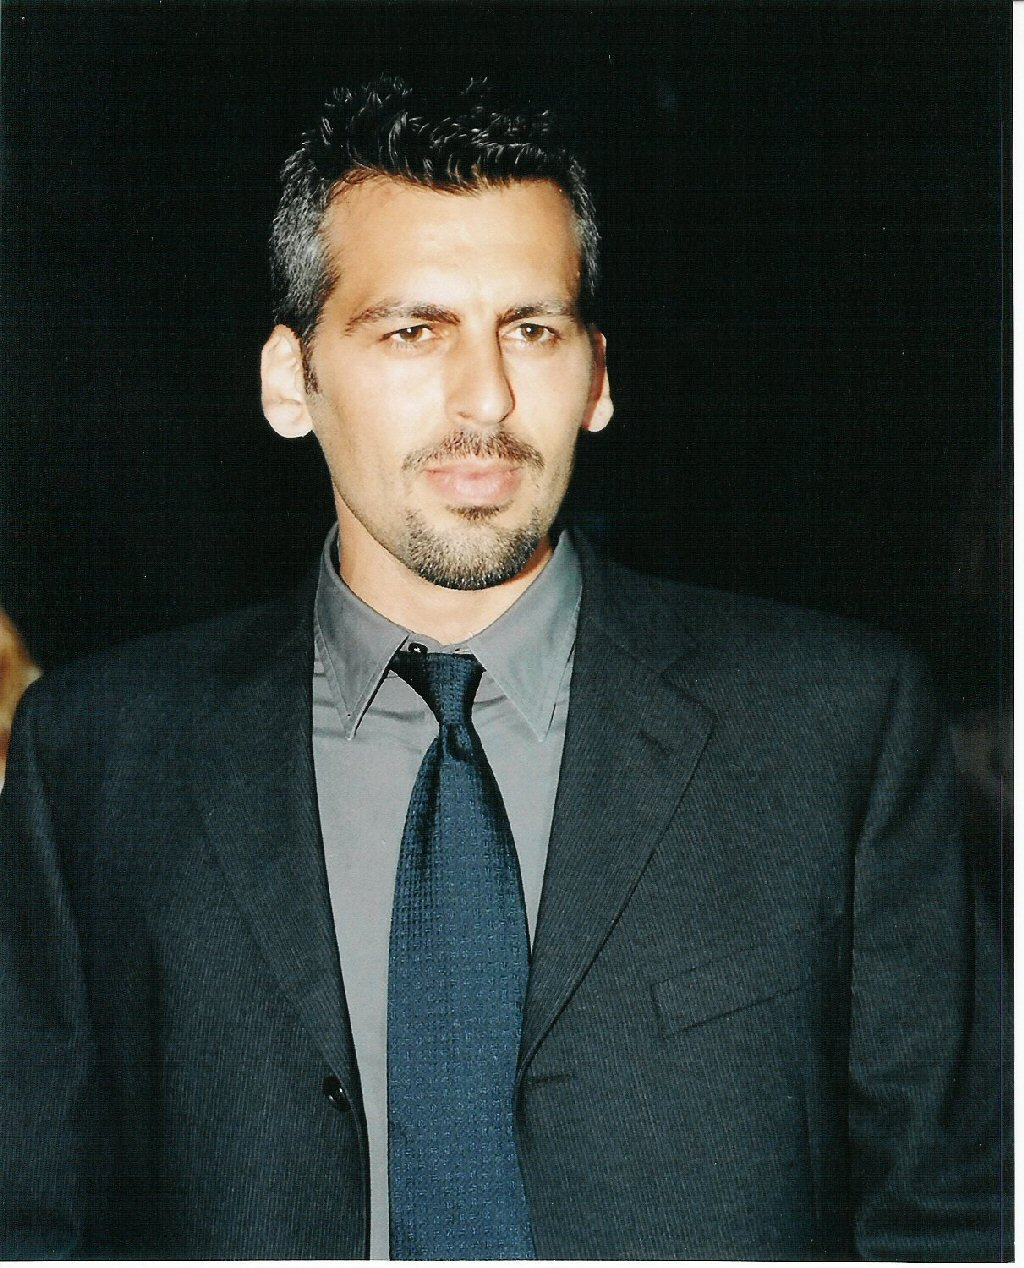 Poze Oded Fehr - Actor - Poza 8 din 20 - CineMagia.ro